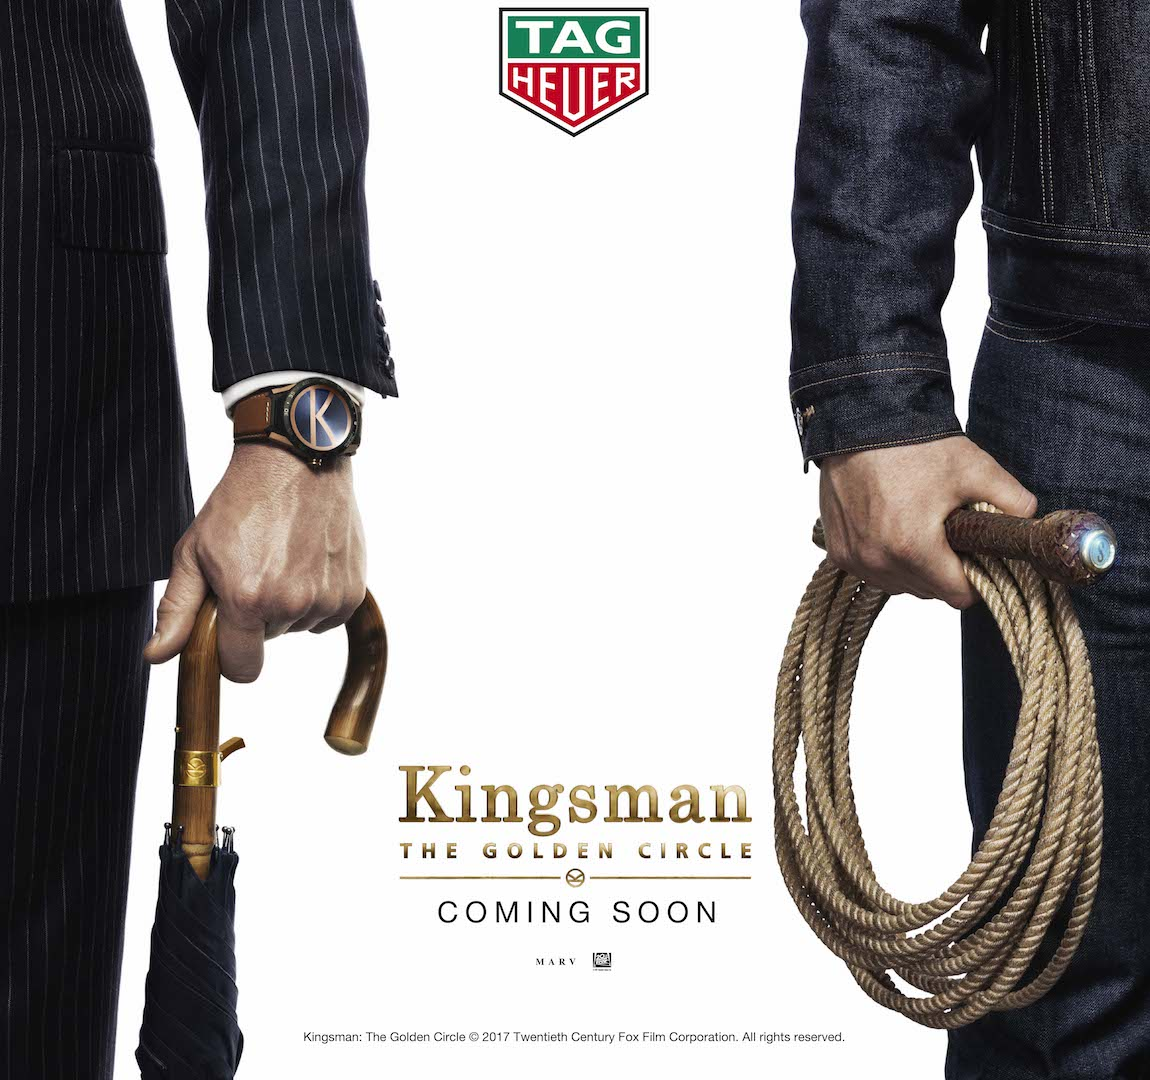 TAG Heuer, Marv Films and Twentieth Century Fox Launch a Global Partnership with Kingsman: The Golden Circle